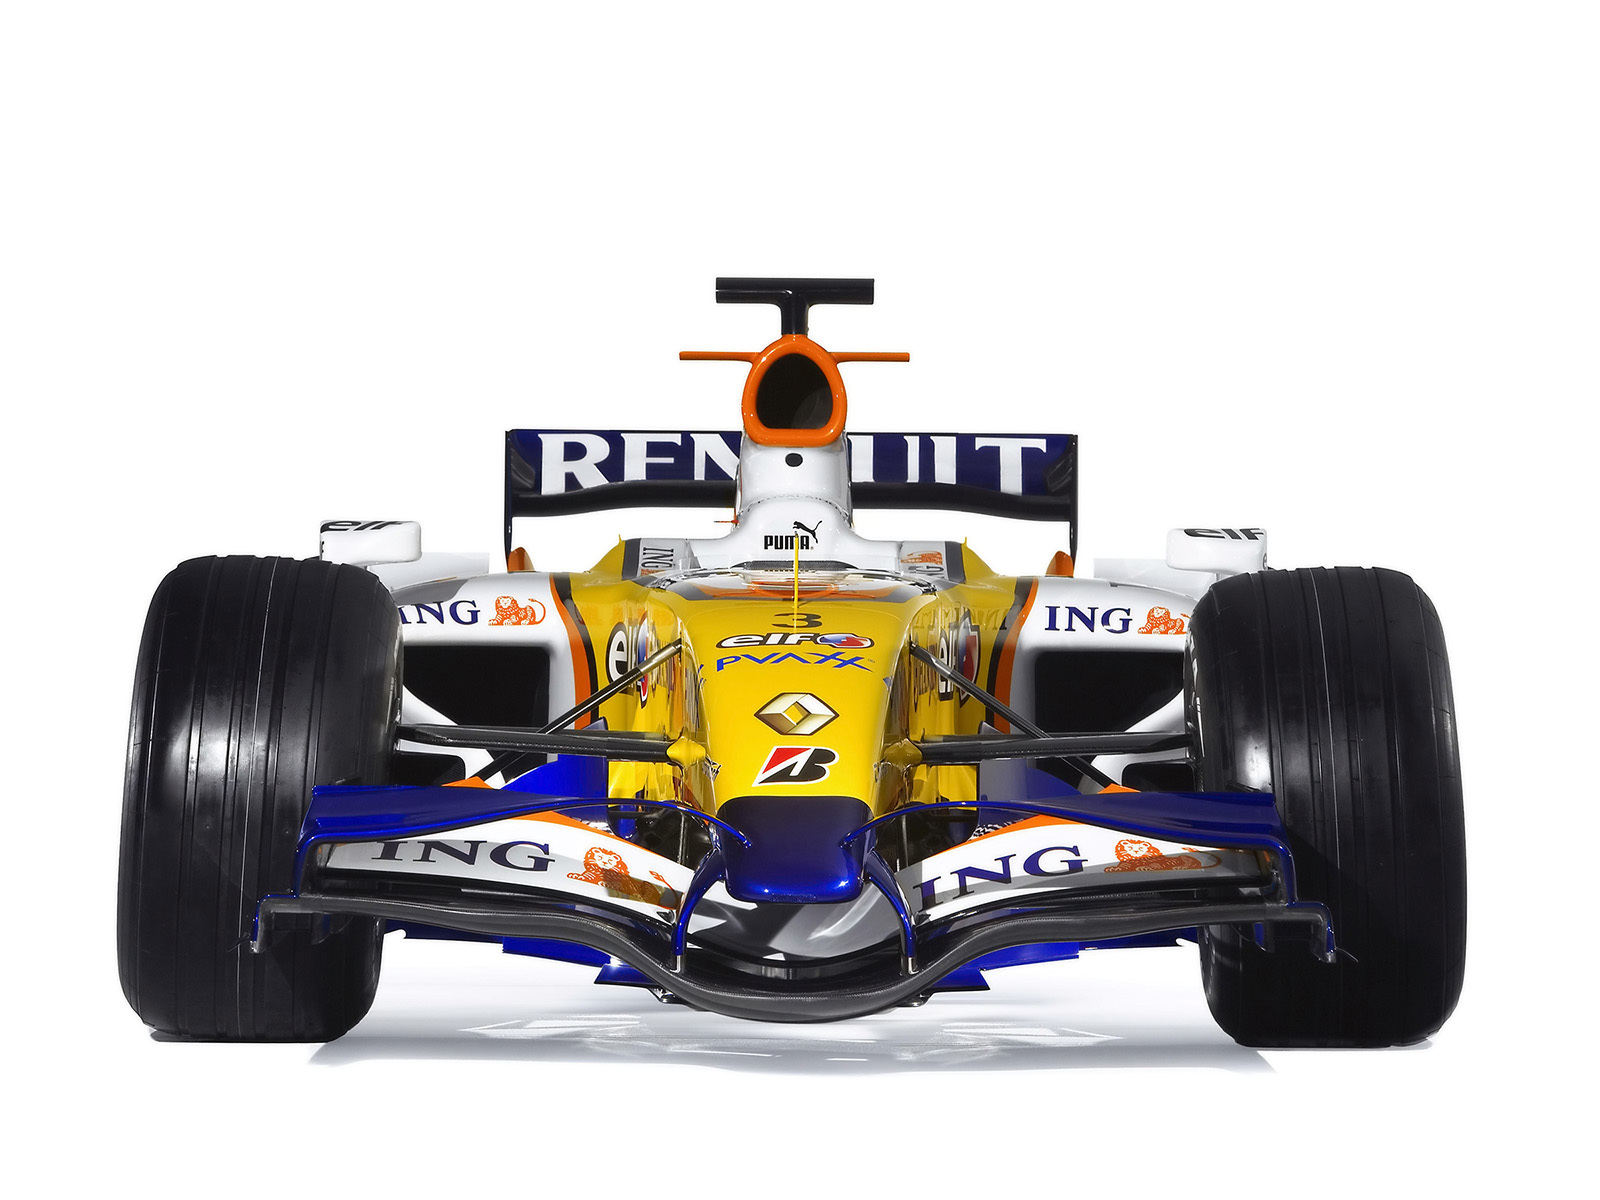 Renault front formula one HD Wallpaper